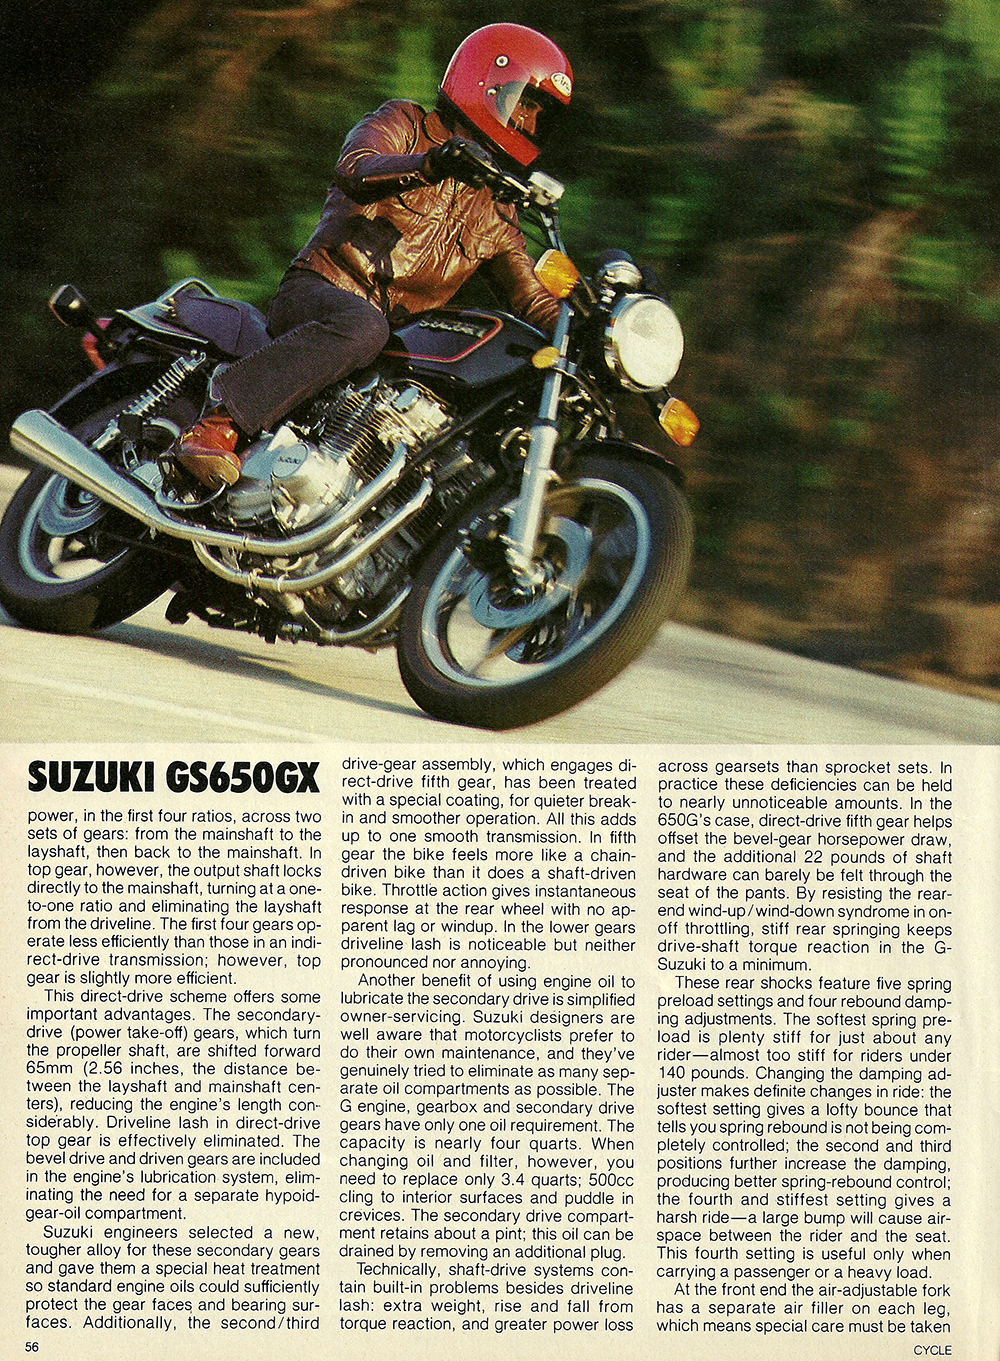 1981 Suzuki GS650 GX road test 03.jpg